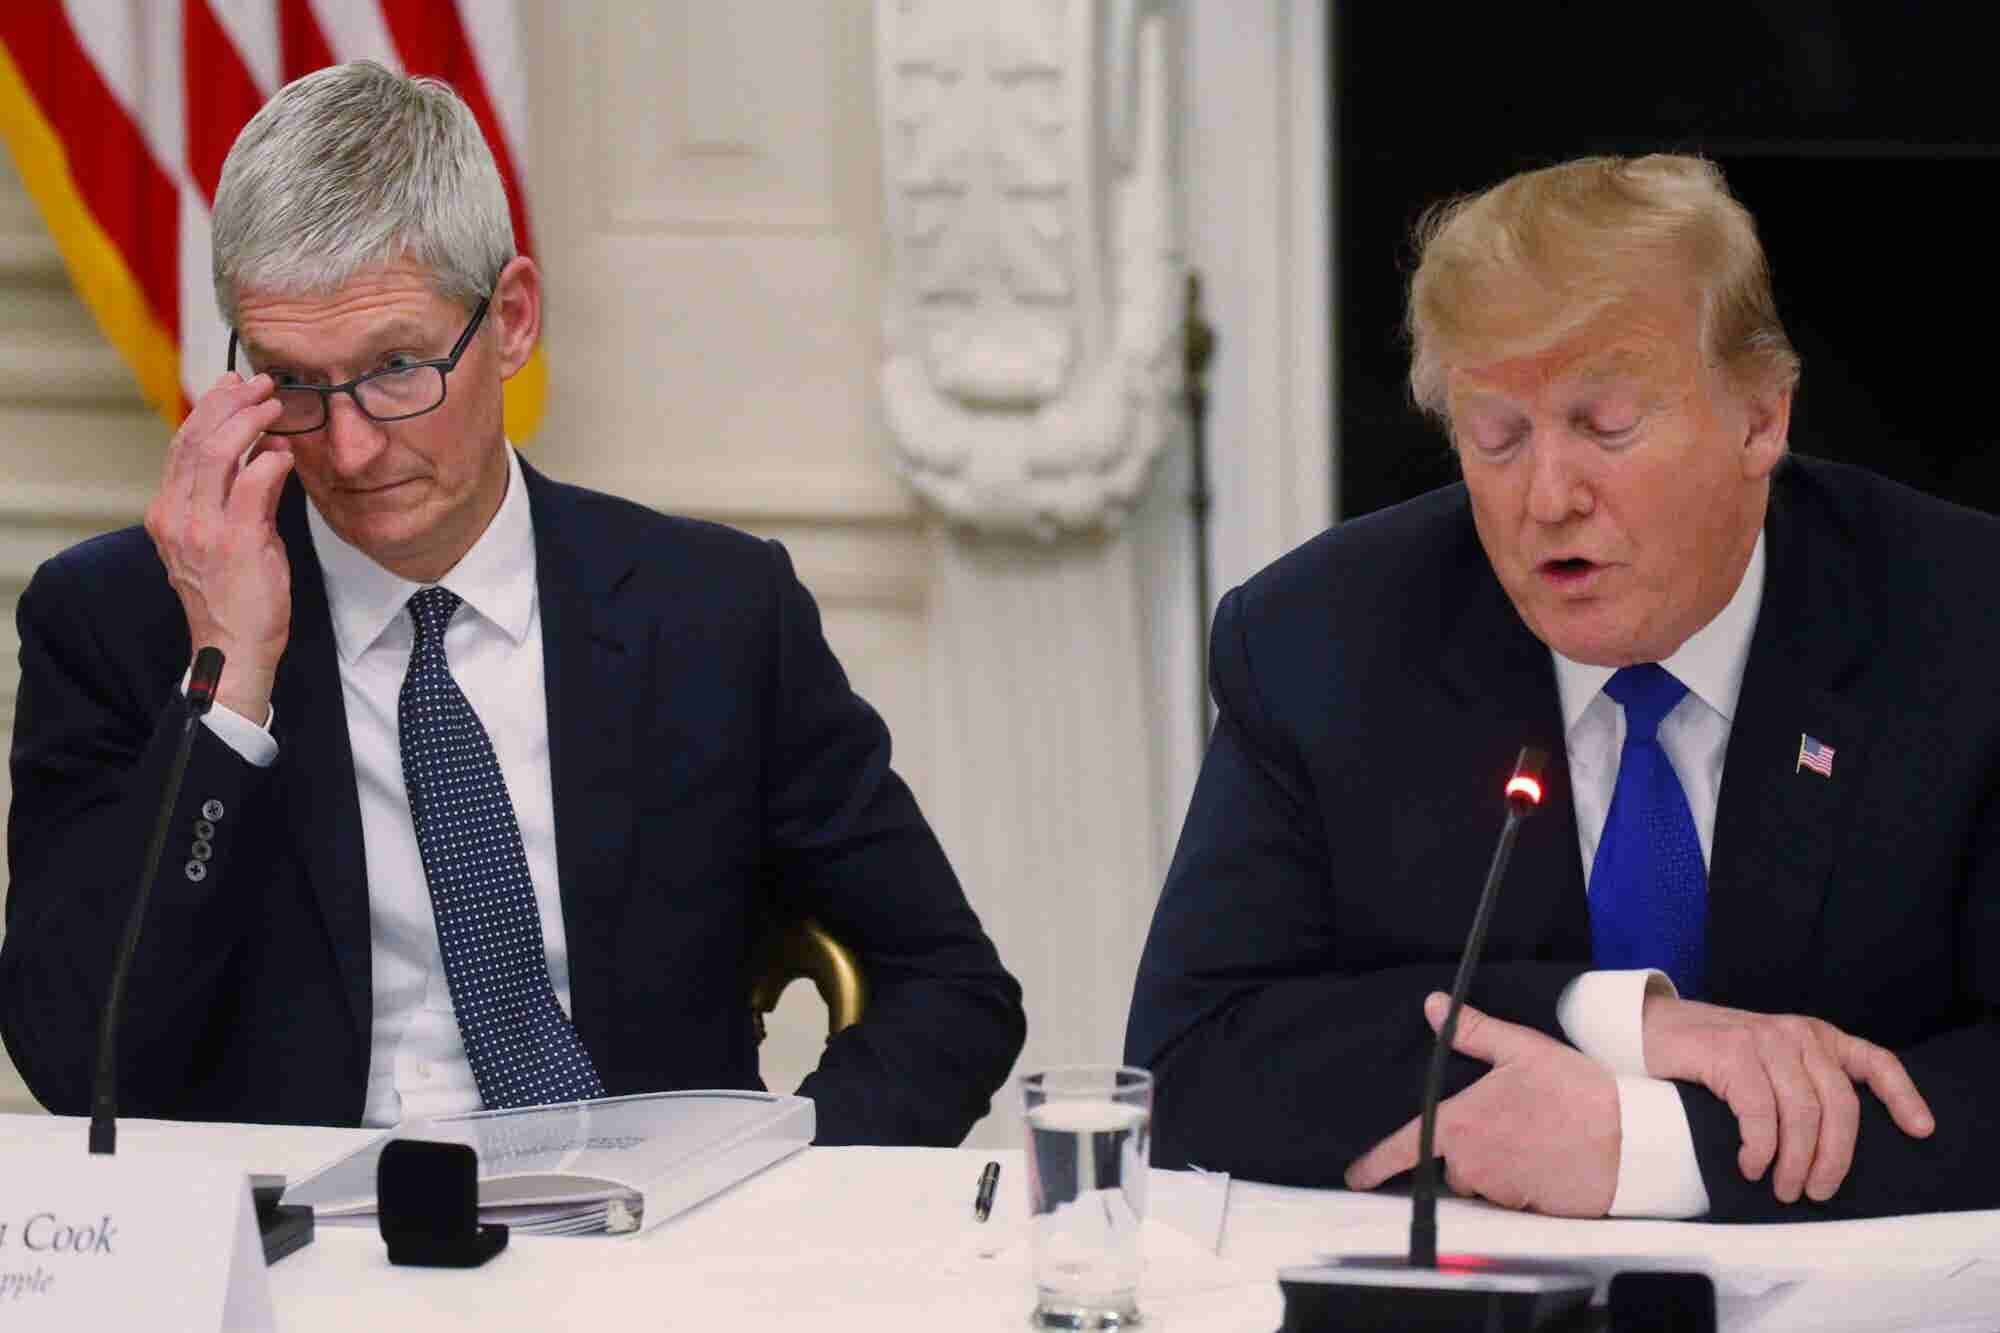 President Trump Just Referred to Apple's CEO as 'Tim Apple'